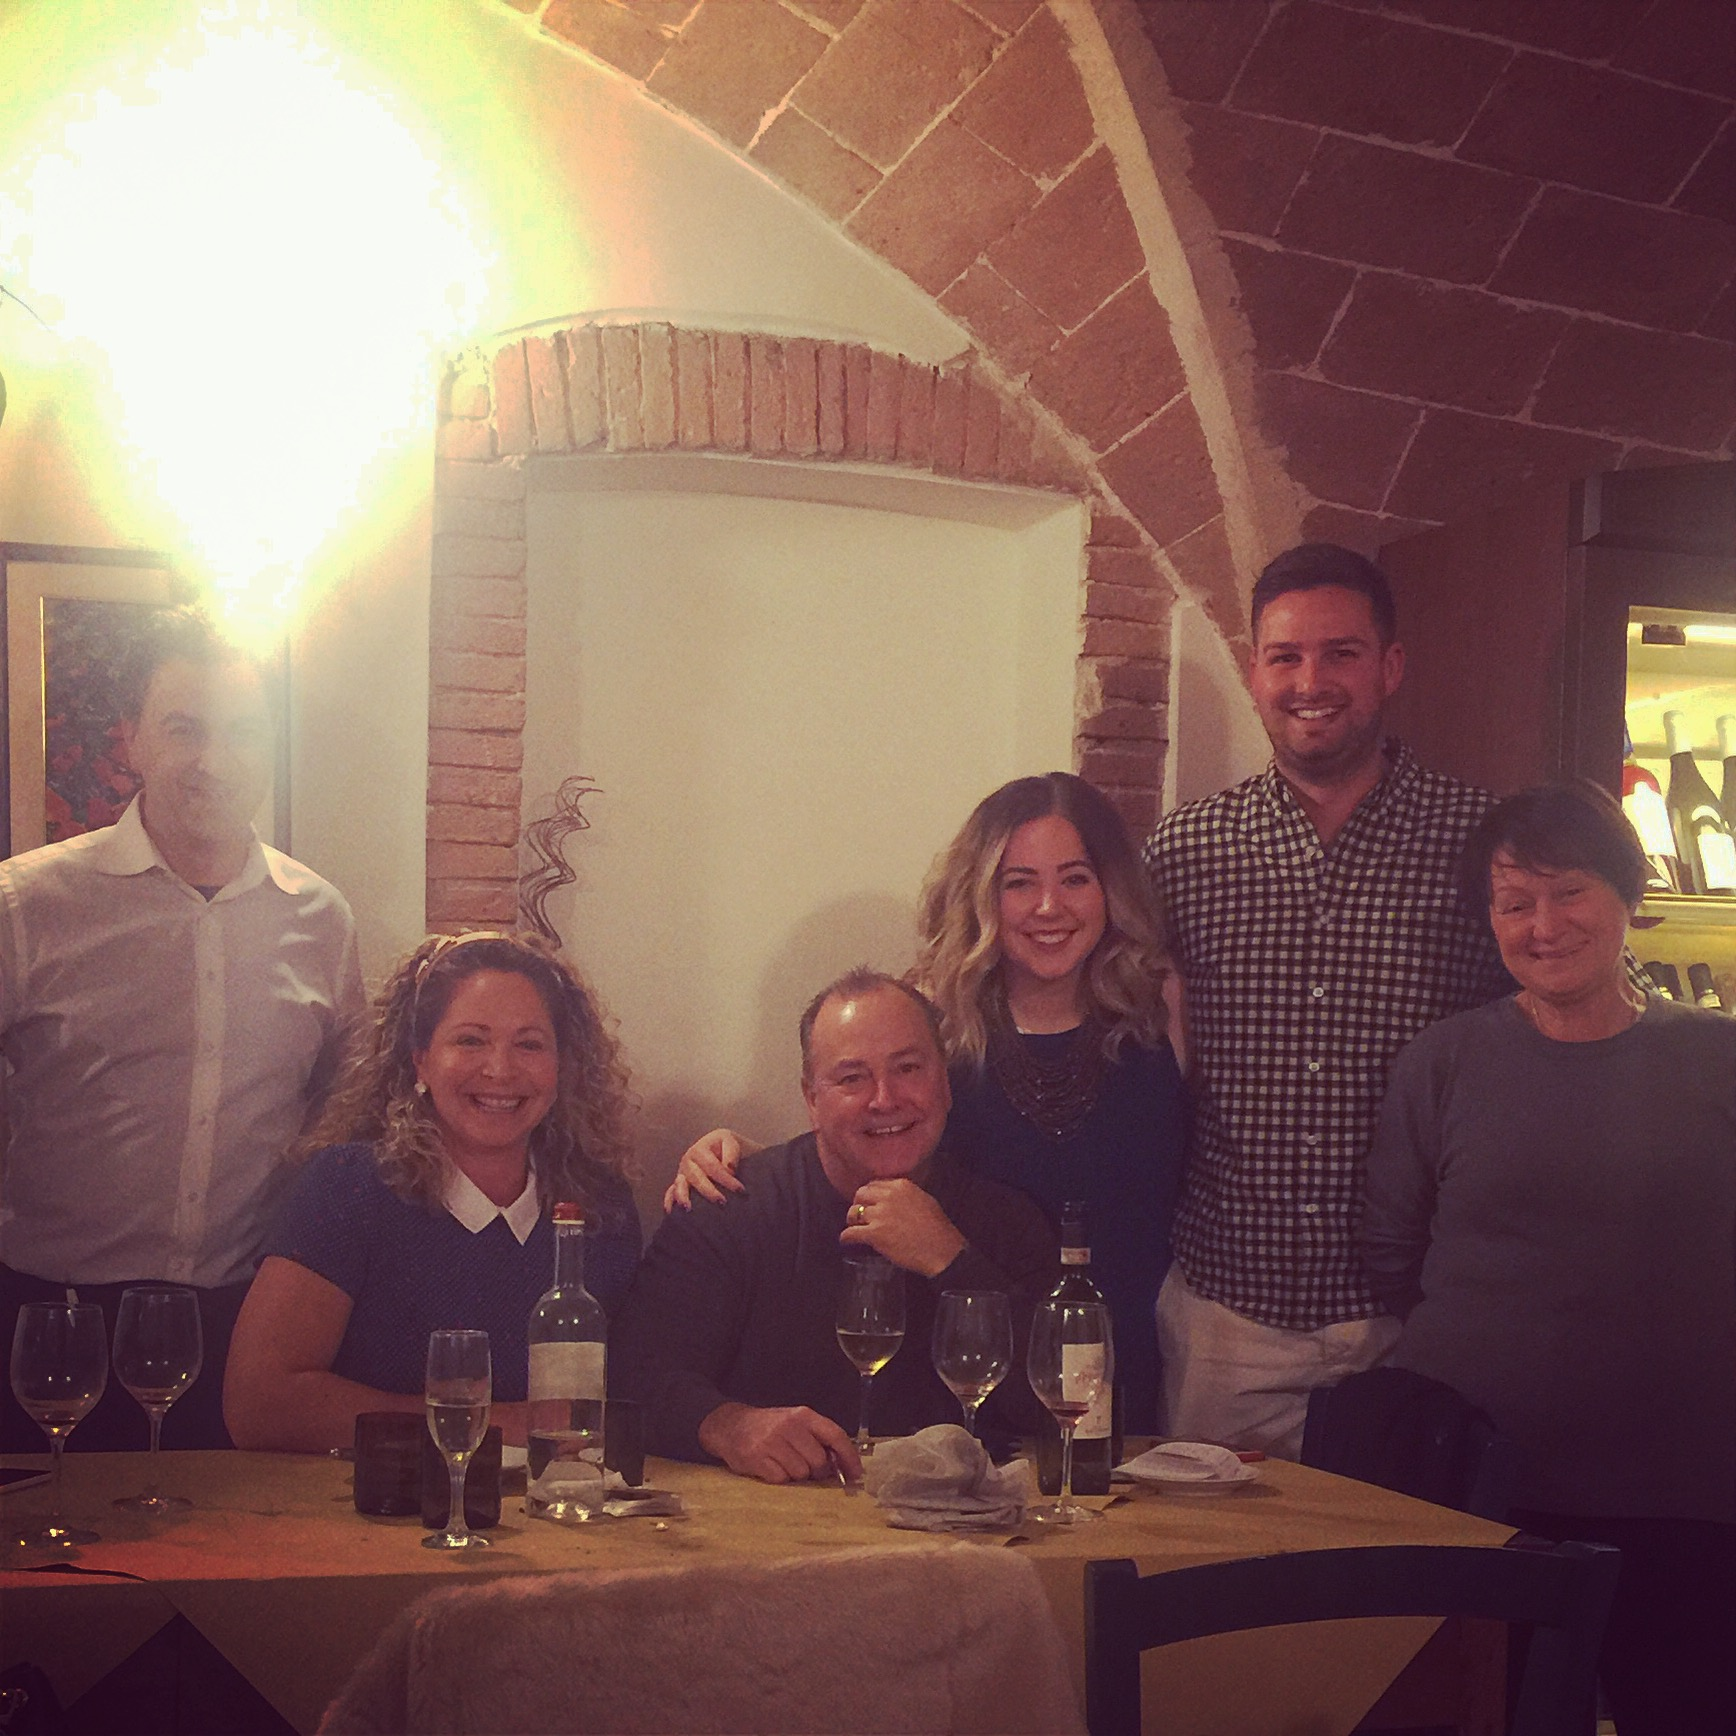 FROM THE LEFT: Roberto Letteri (Osterio Del Borgo), Joanne Hazelwood (my mother), Mark Hazelwood (my step father), me, Paul Bohn (my fiancee), Alba (chef at Osteria Del Borgo and also Robertos sister!!)